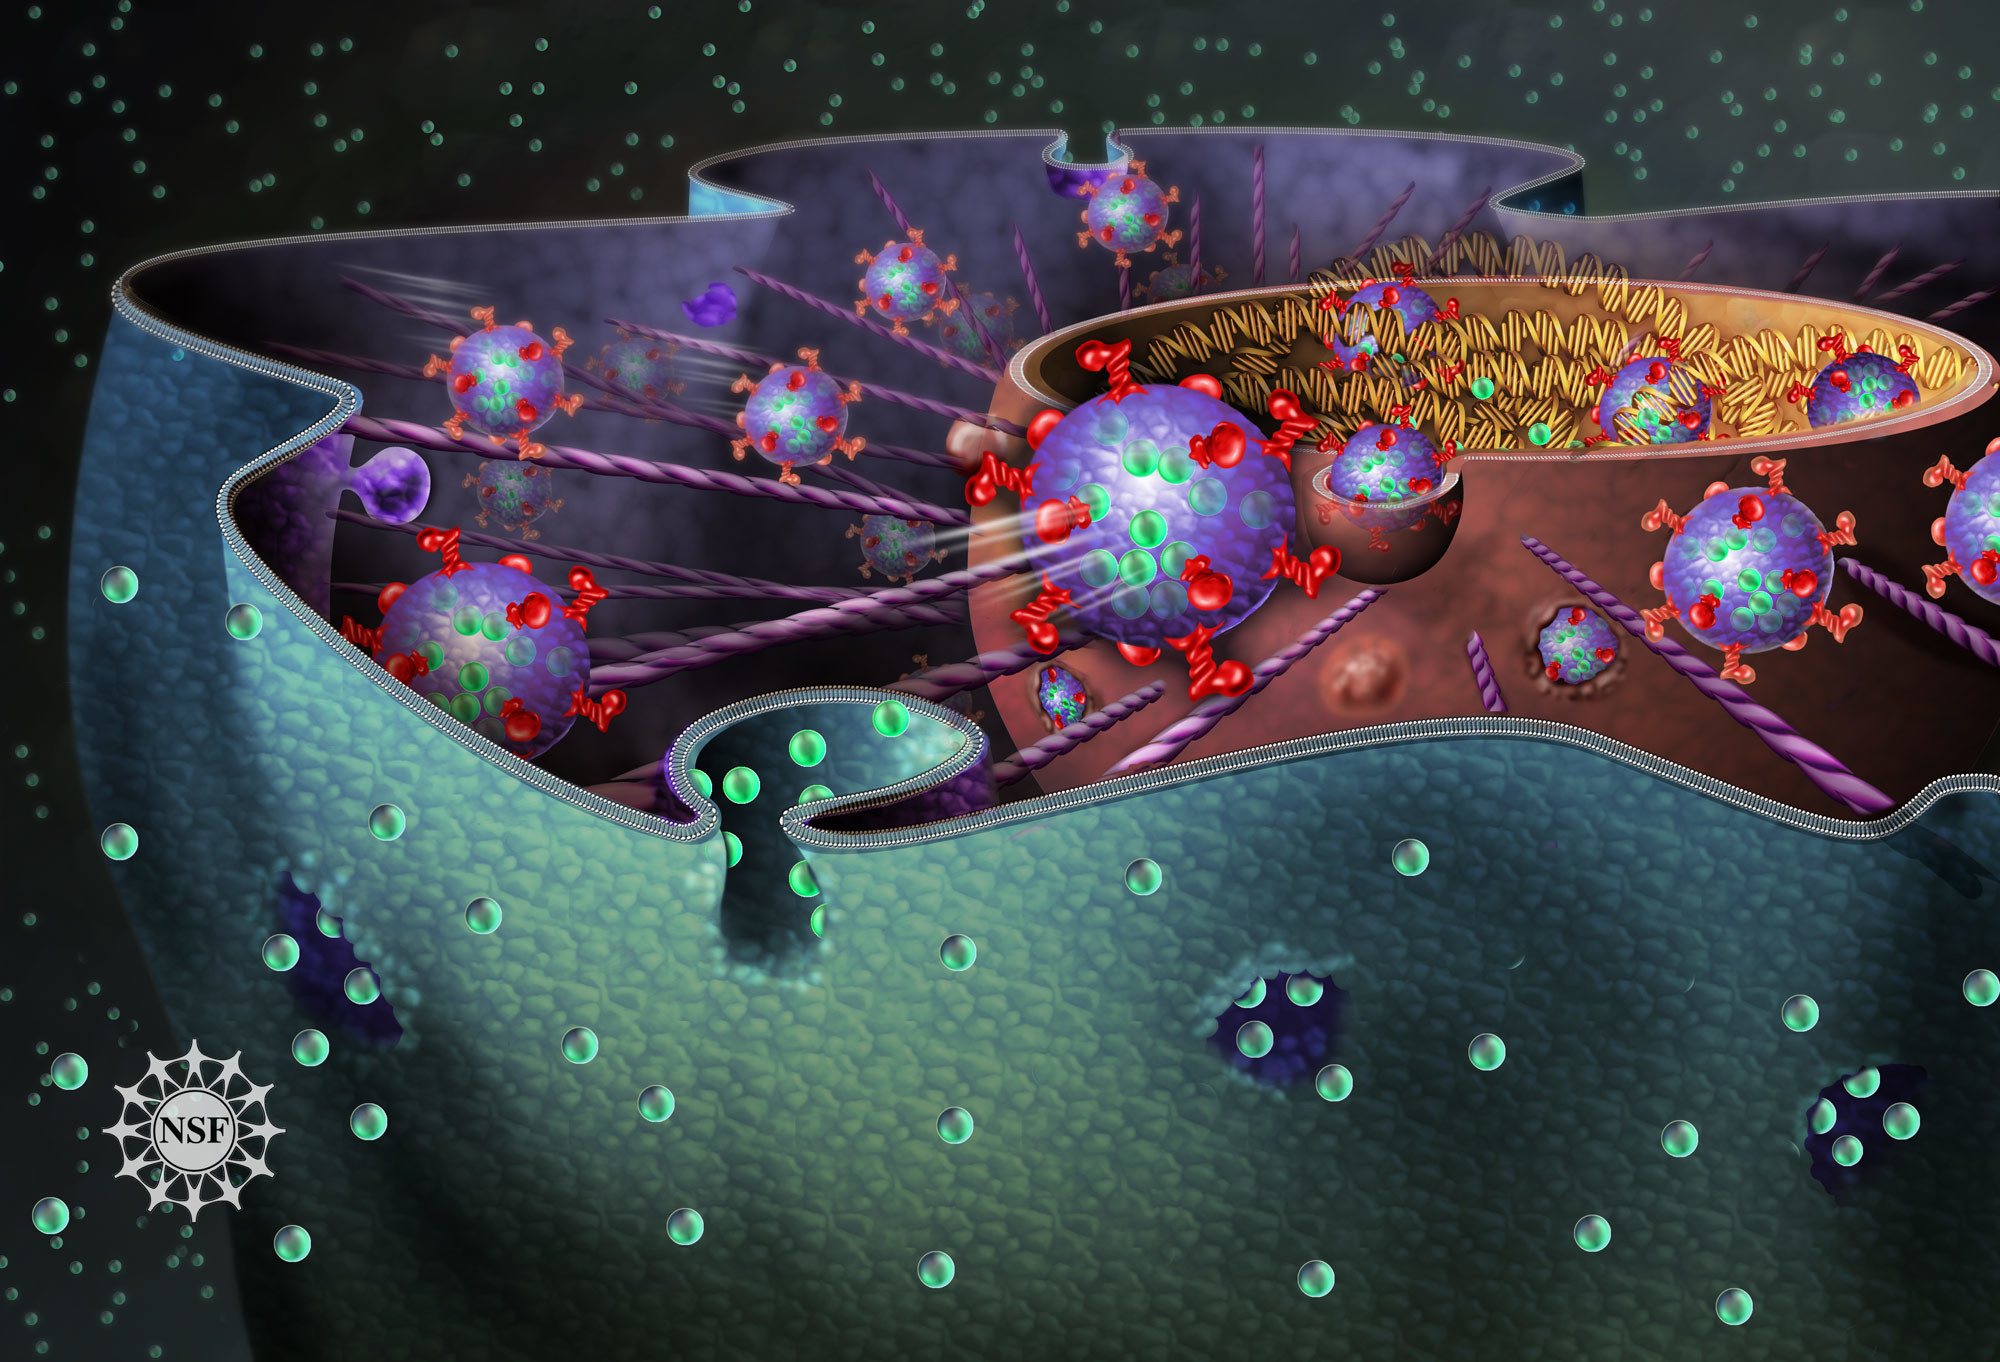 [Nature; Image: National Science Foundation]